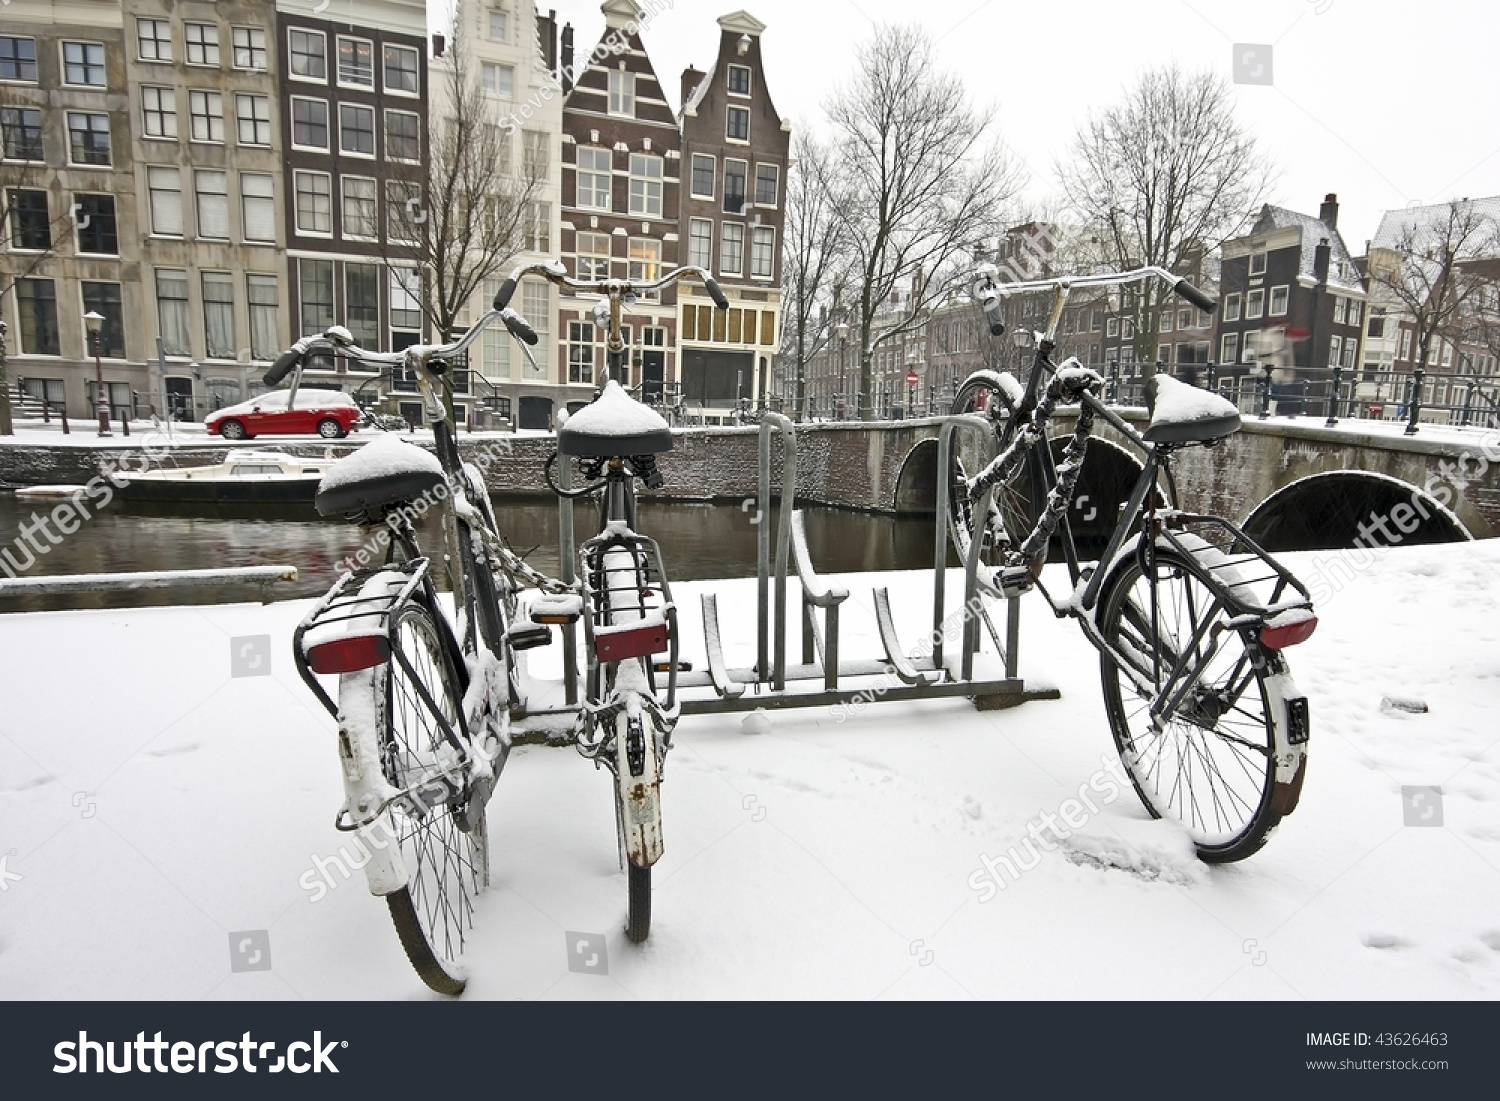 Bikes in the snow in Amsterdam Netherlands in wintertime